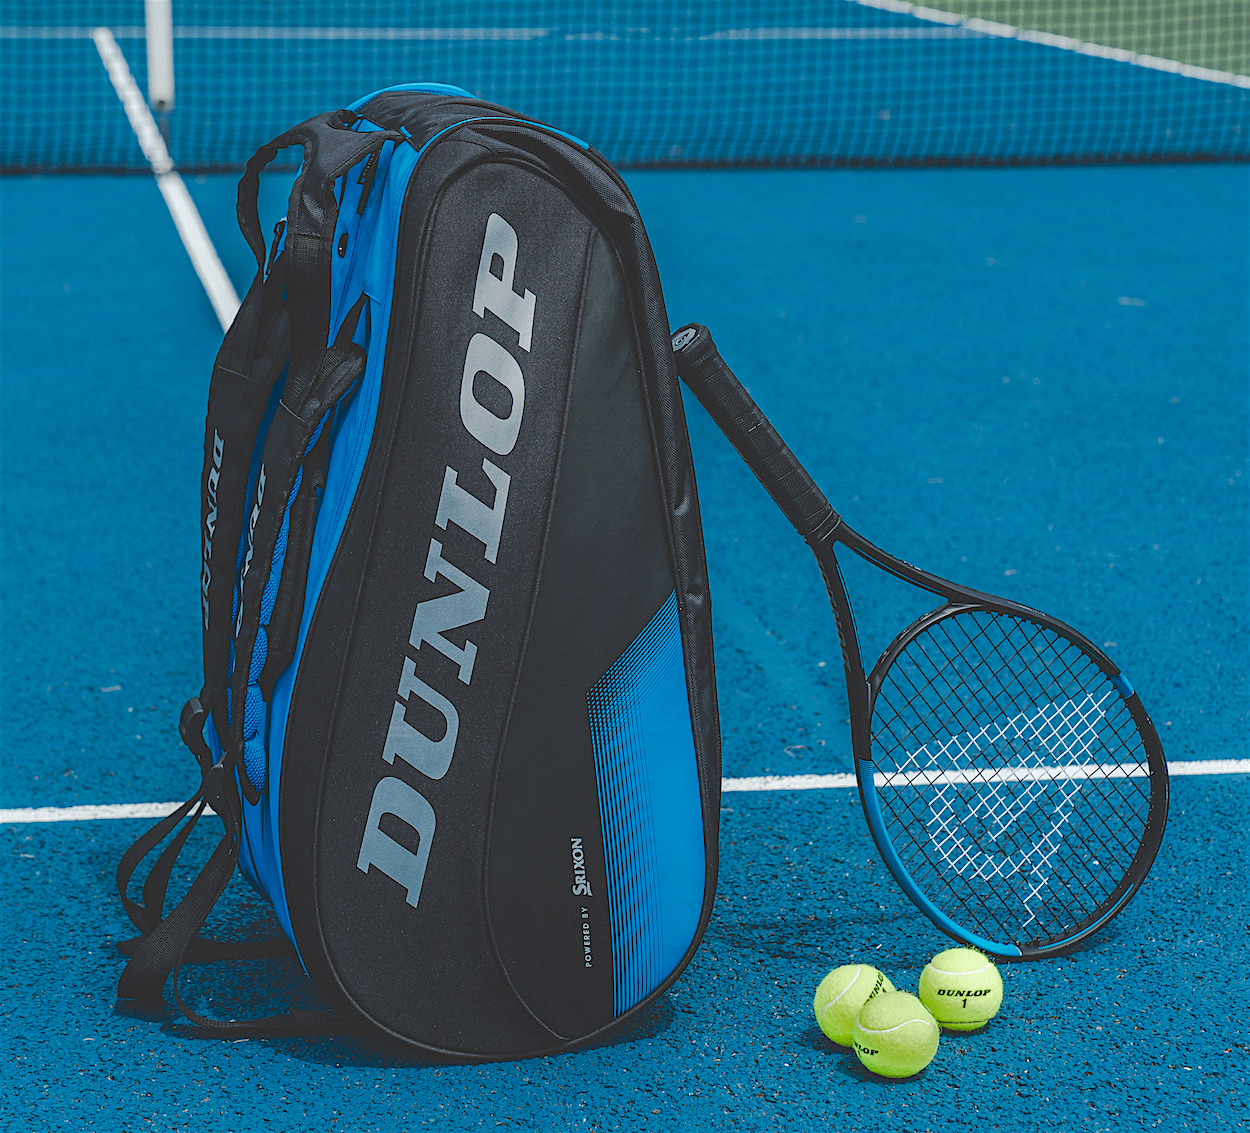 Dunlop FX 500 and bag competition